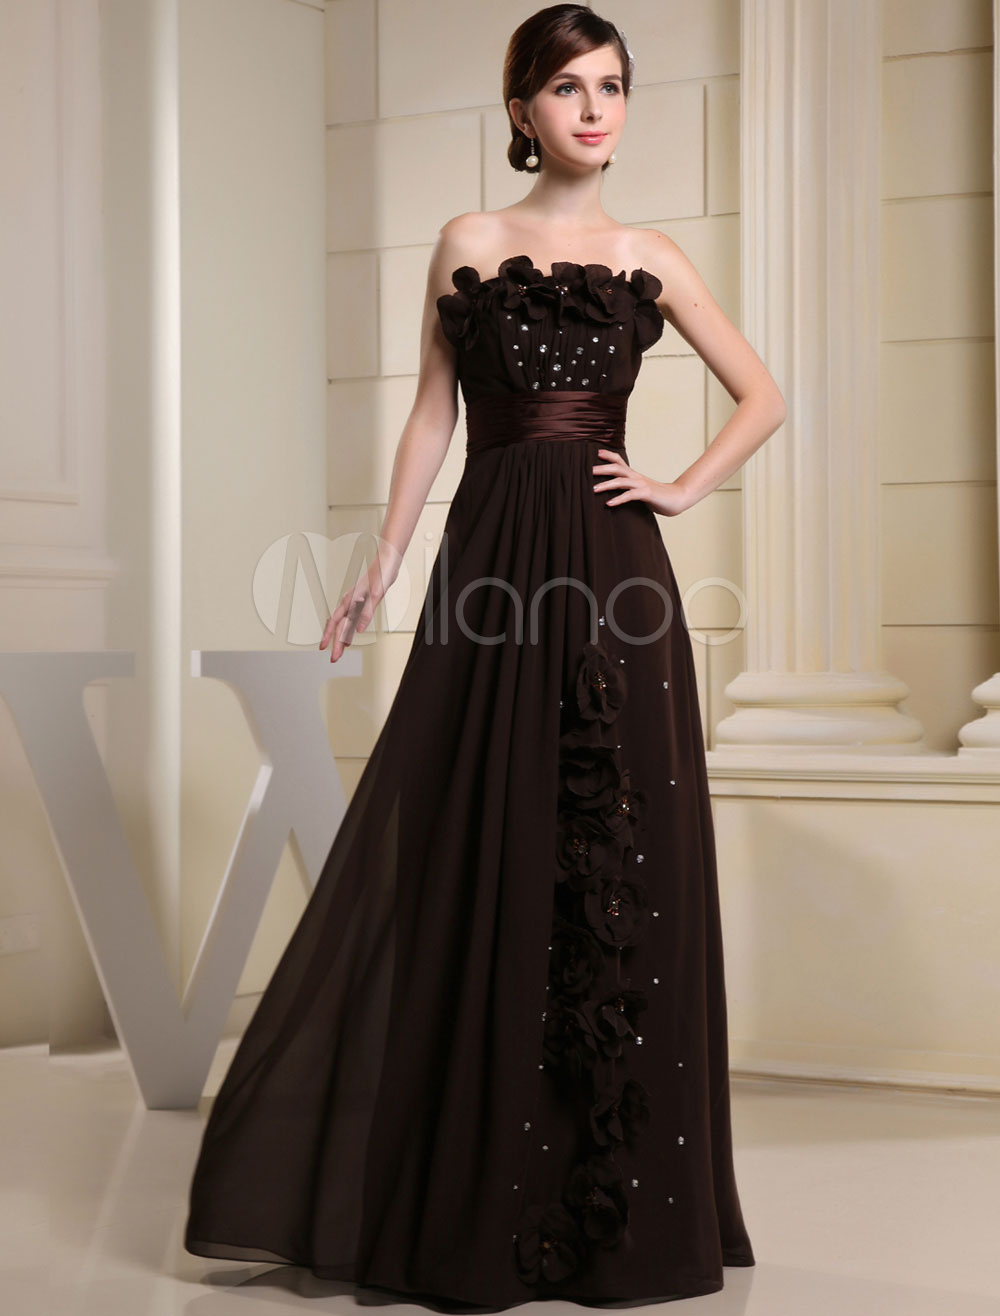 Buy Floor-Length Evening Dress Strapless Sweetheart Flower Beading A-Line Chiffon Prom Dress for $134.99 in Milanoo store